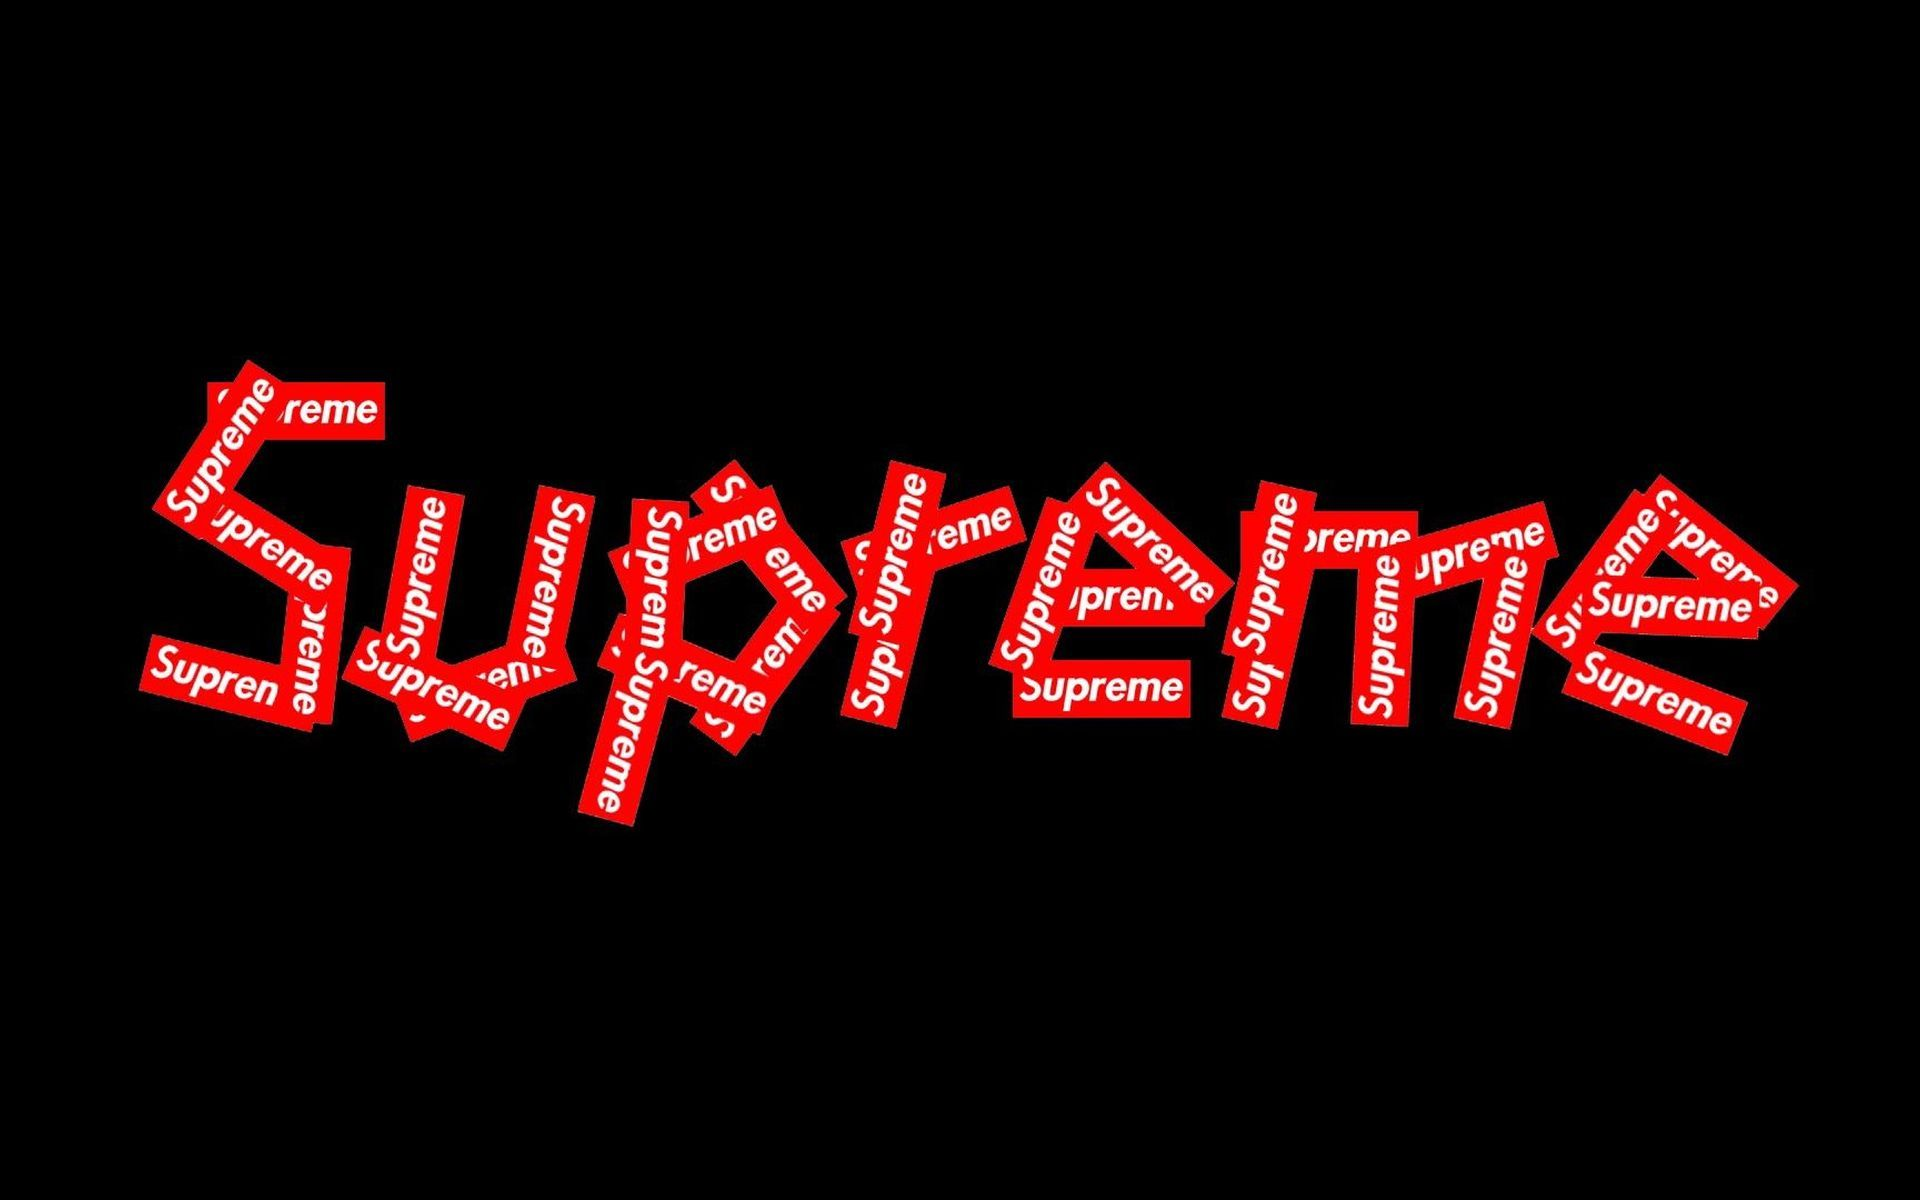 Related image wallpaper art Hypebeast wallpaper Supreme 1920x1200